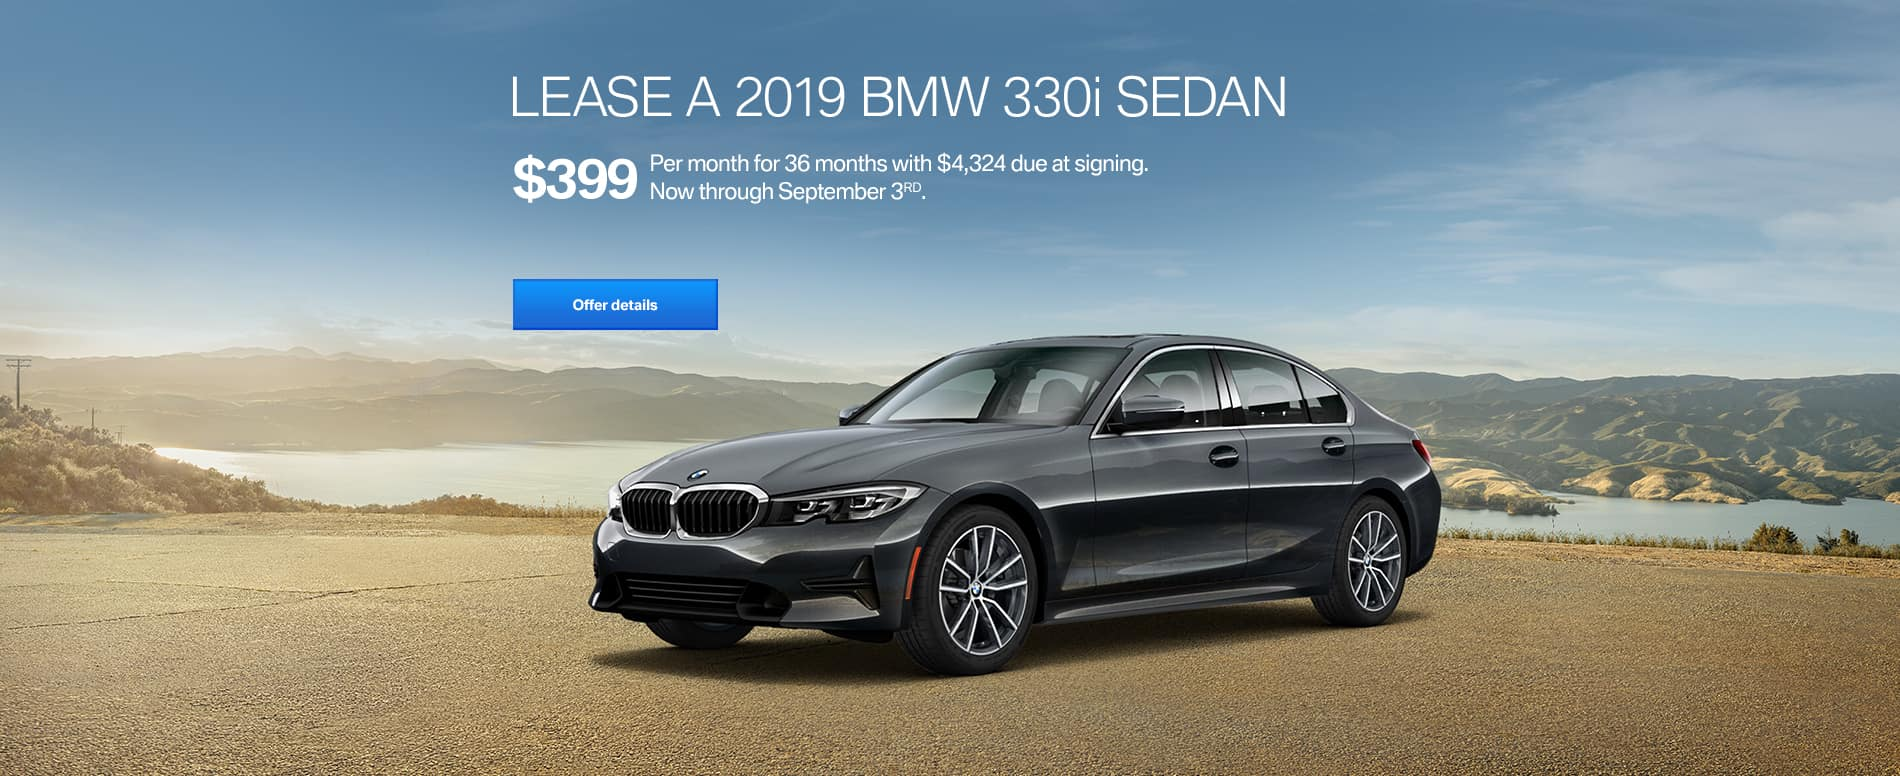 lease a 330i $399/mo for east bay bmw